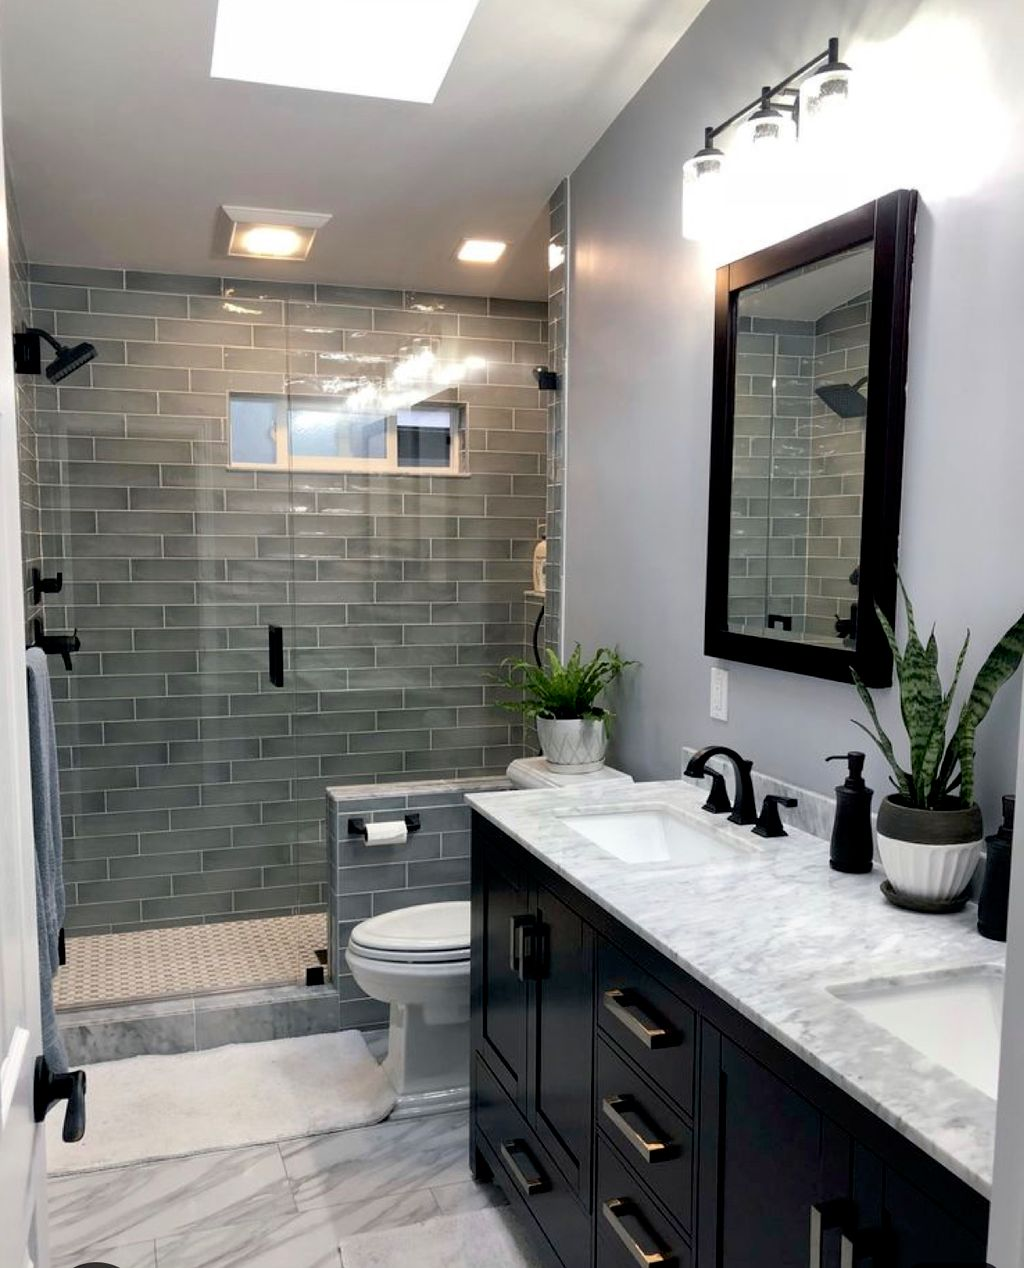 5x10 bathrooms